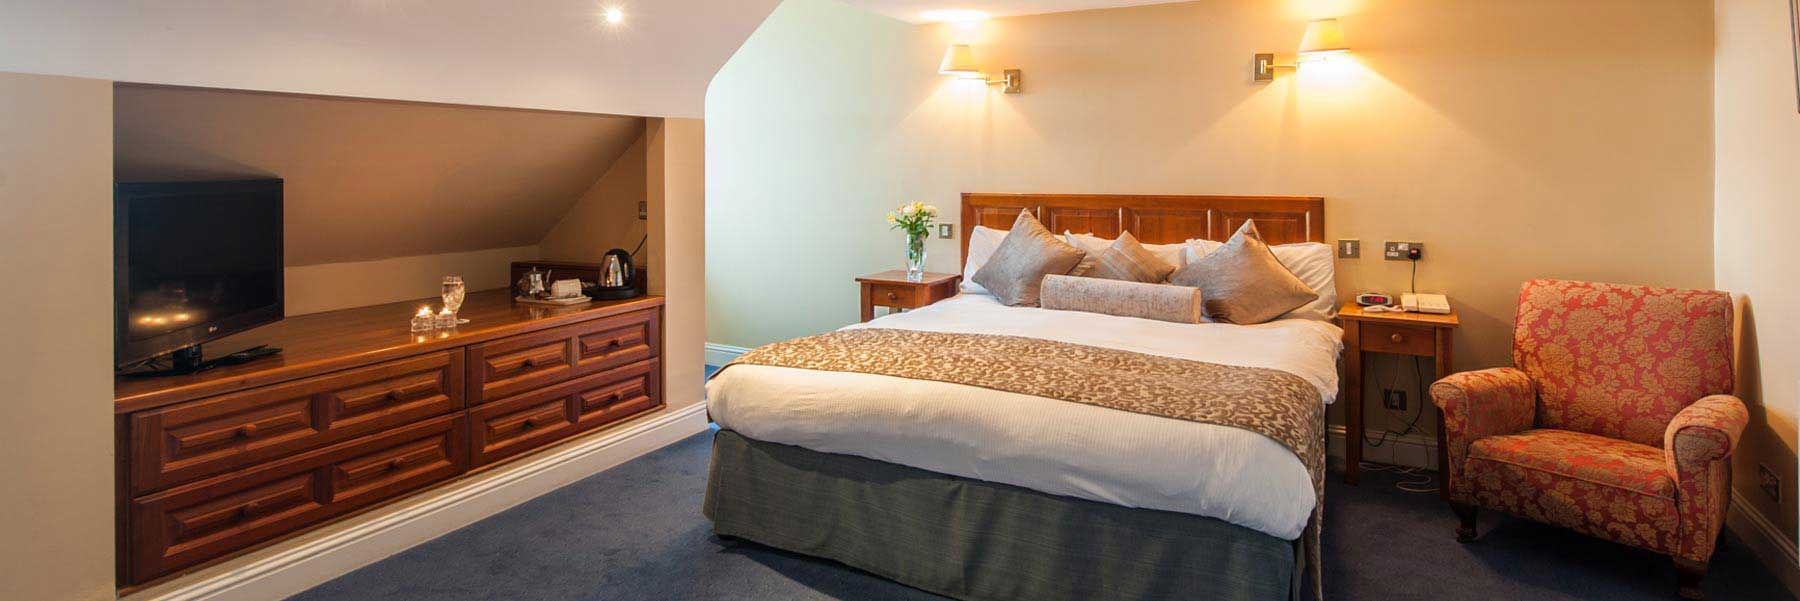 family run hotel steps away from Blarney Castle